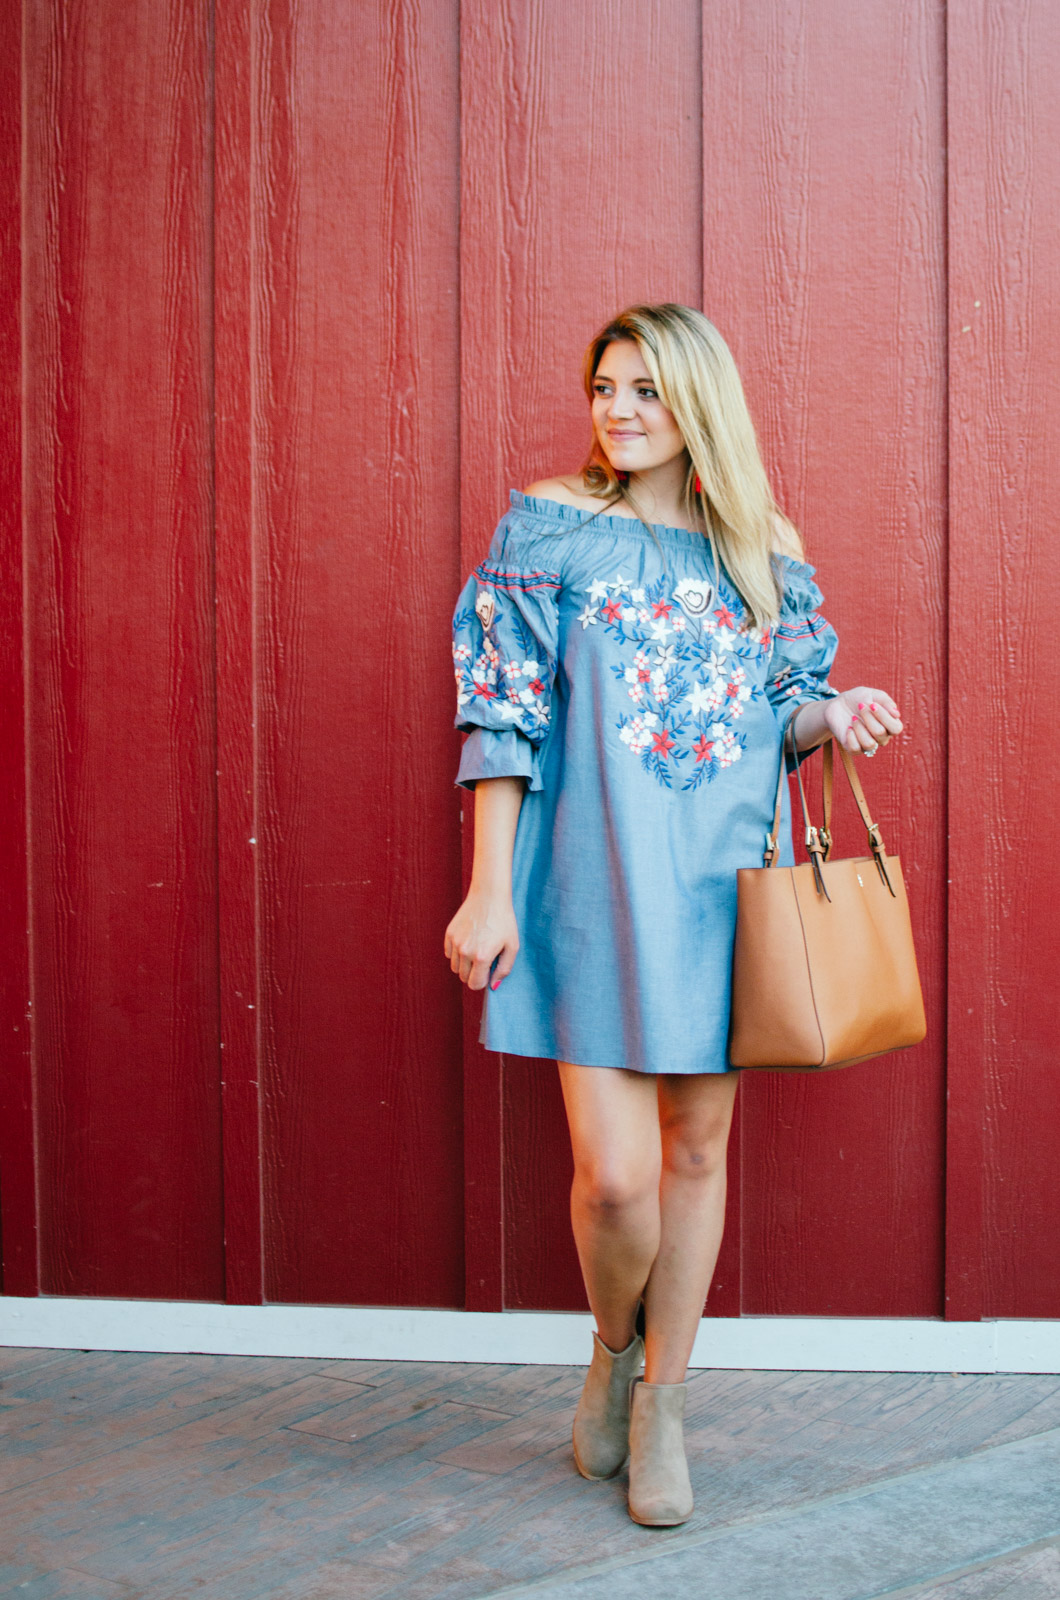 dress with booties outfit - early fall outfit embroidered chambray dress | For more cute casual outfit ideas, head to bylaurenm.com!